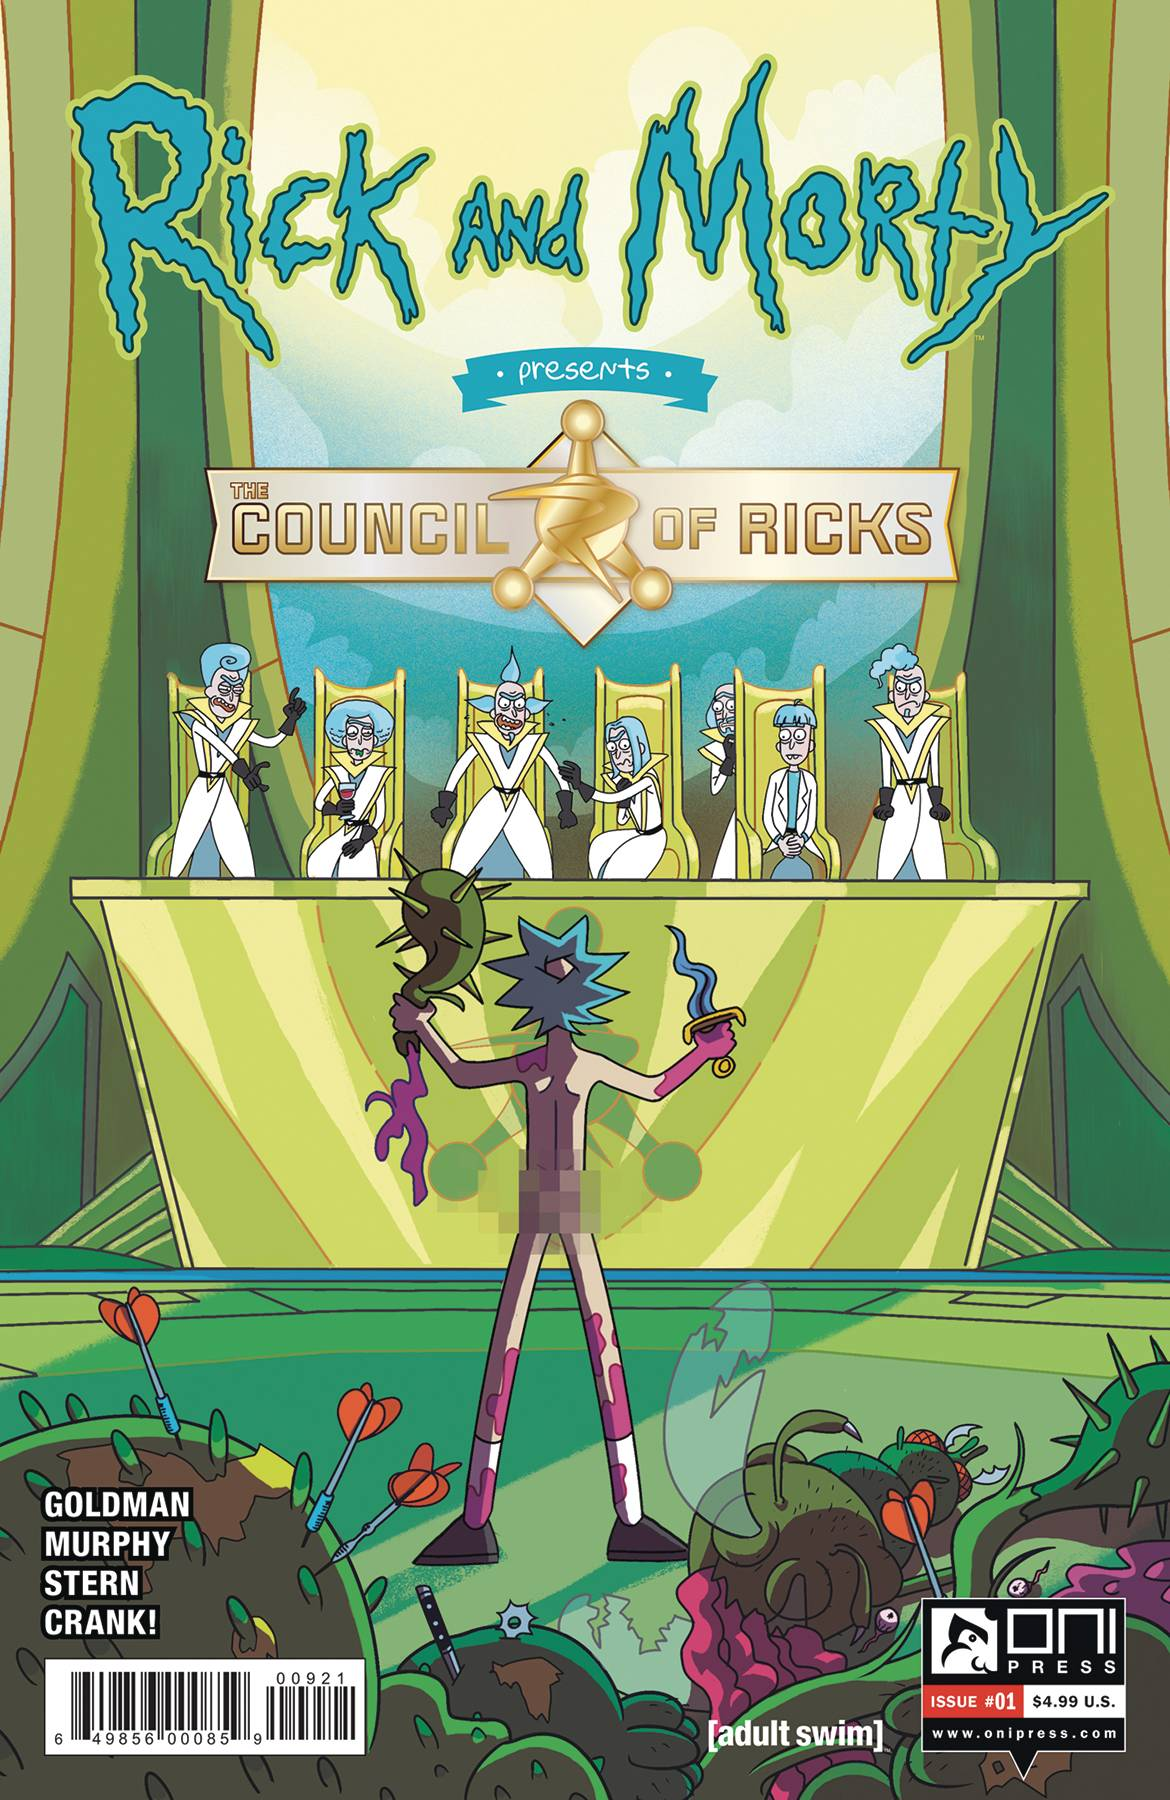 Rick And Morty Presents: The Council Of Ricks #1 (2020)